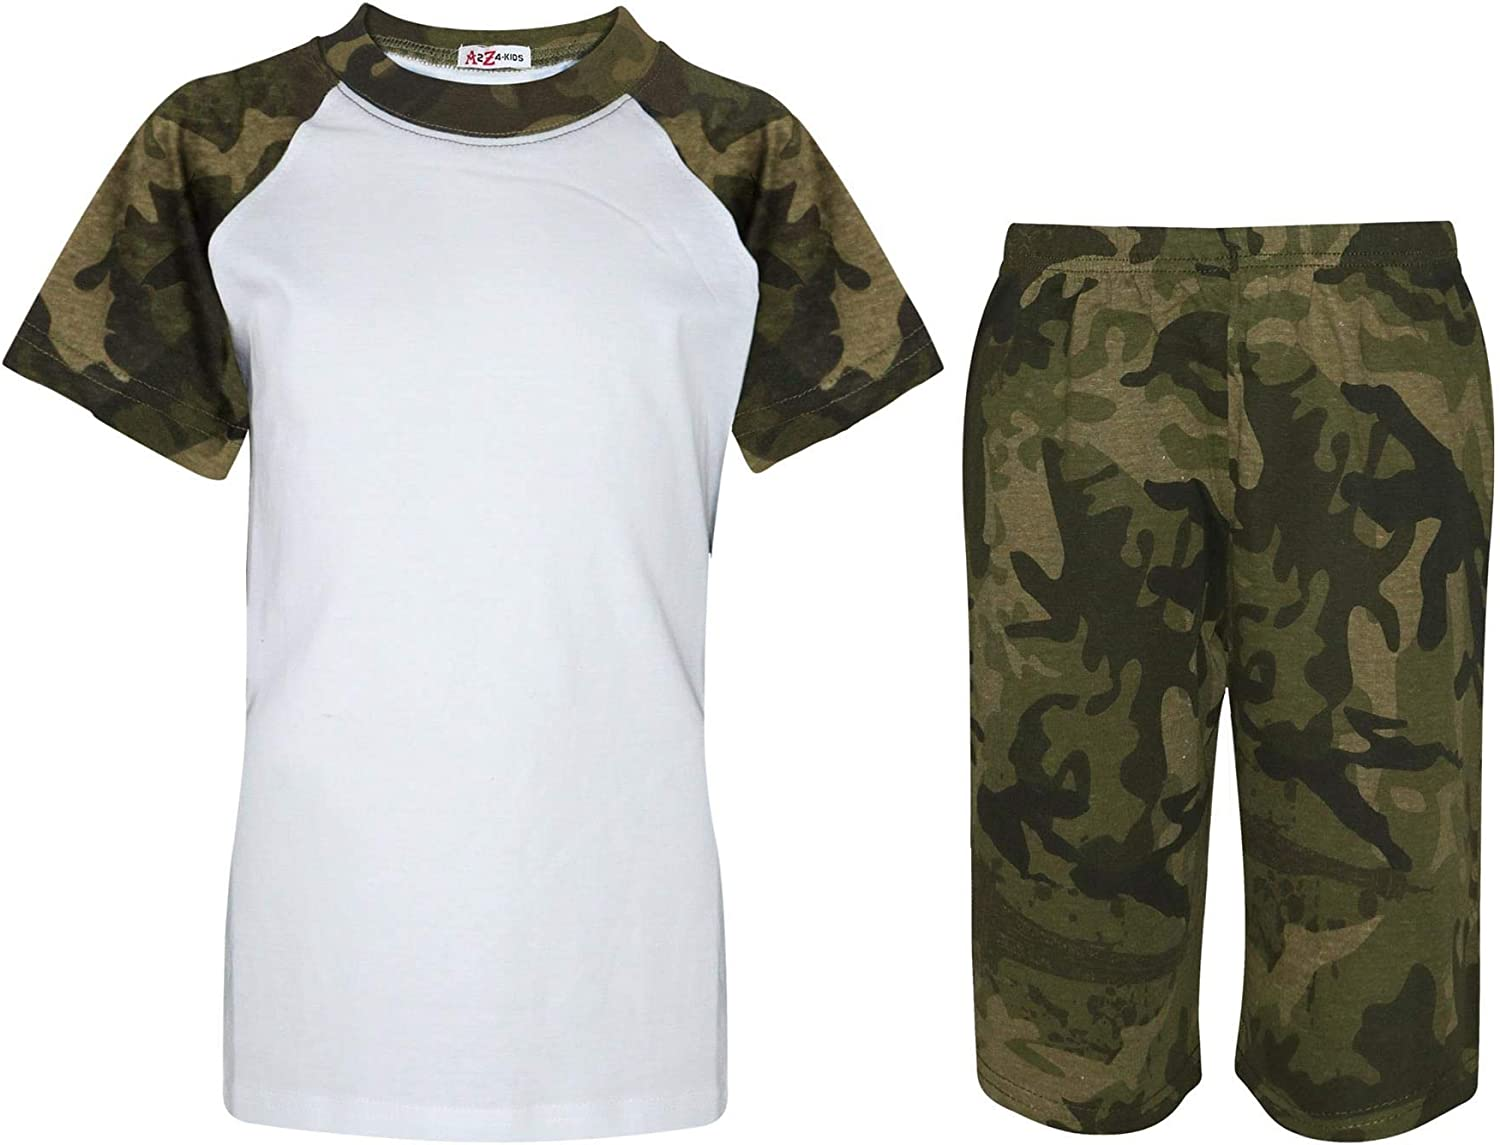 A2Z 4 Kids Kids Girls Boys Camouflage Green Contrast Color Short Sleeves Top /& Knee Length Shorts Sleepwear Summer Outfit Nightwear T Shirt /& Short Sets New Age 2 3 4 5 6 7 8 9 10 11 12 13 Years